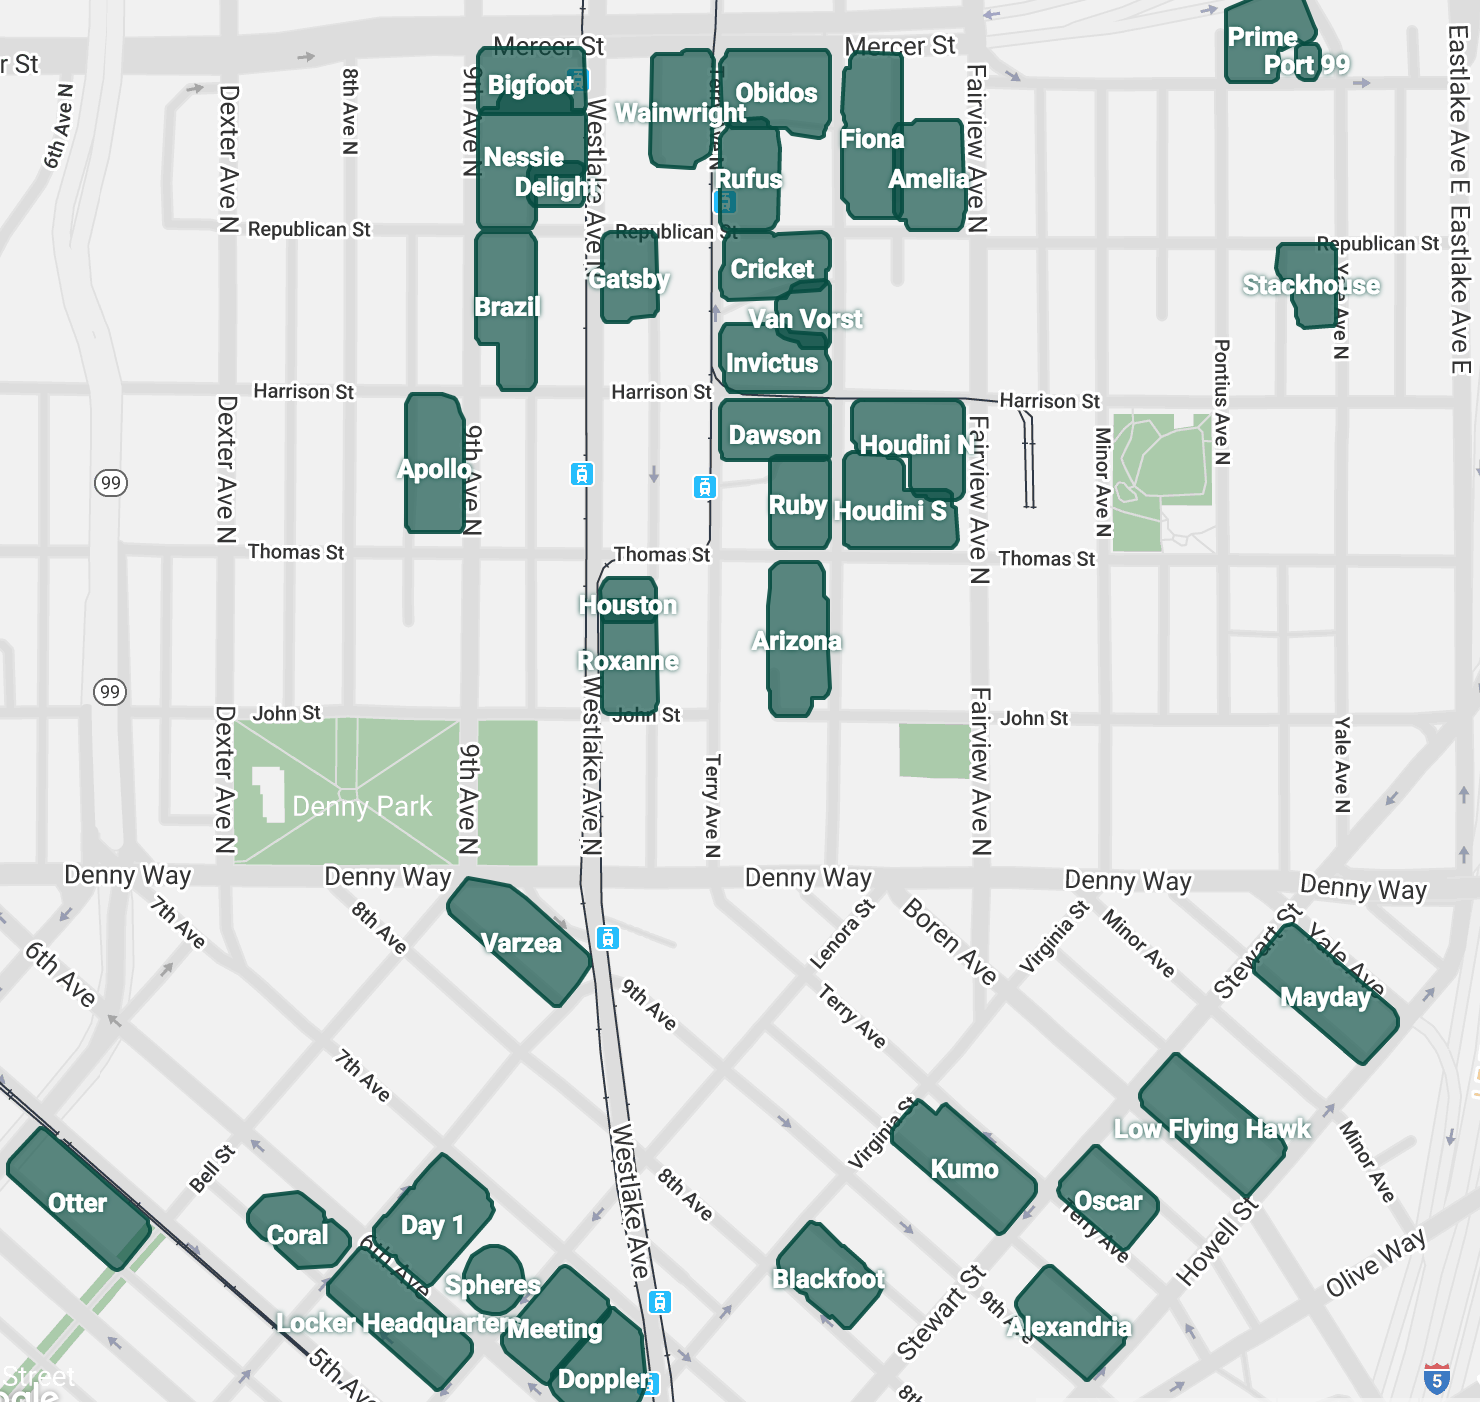 Amazon Seattle Downtown Main Campus map image